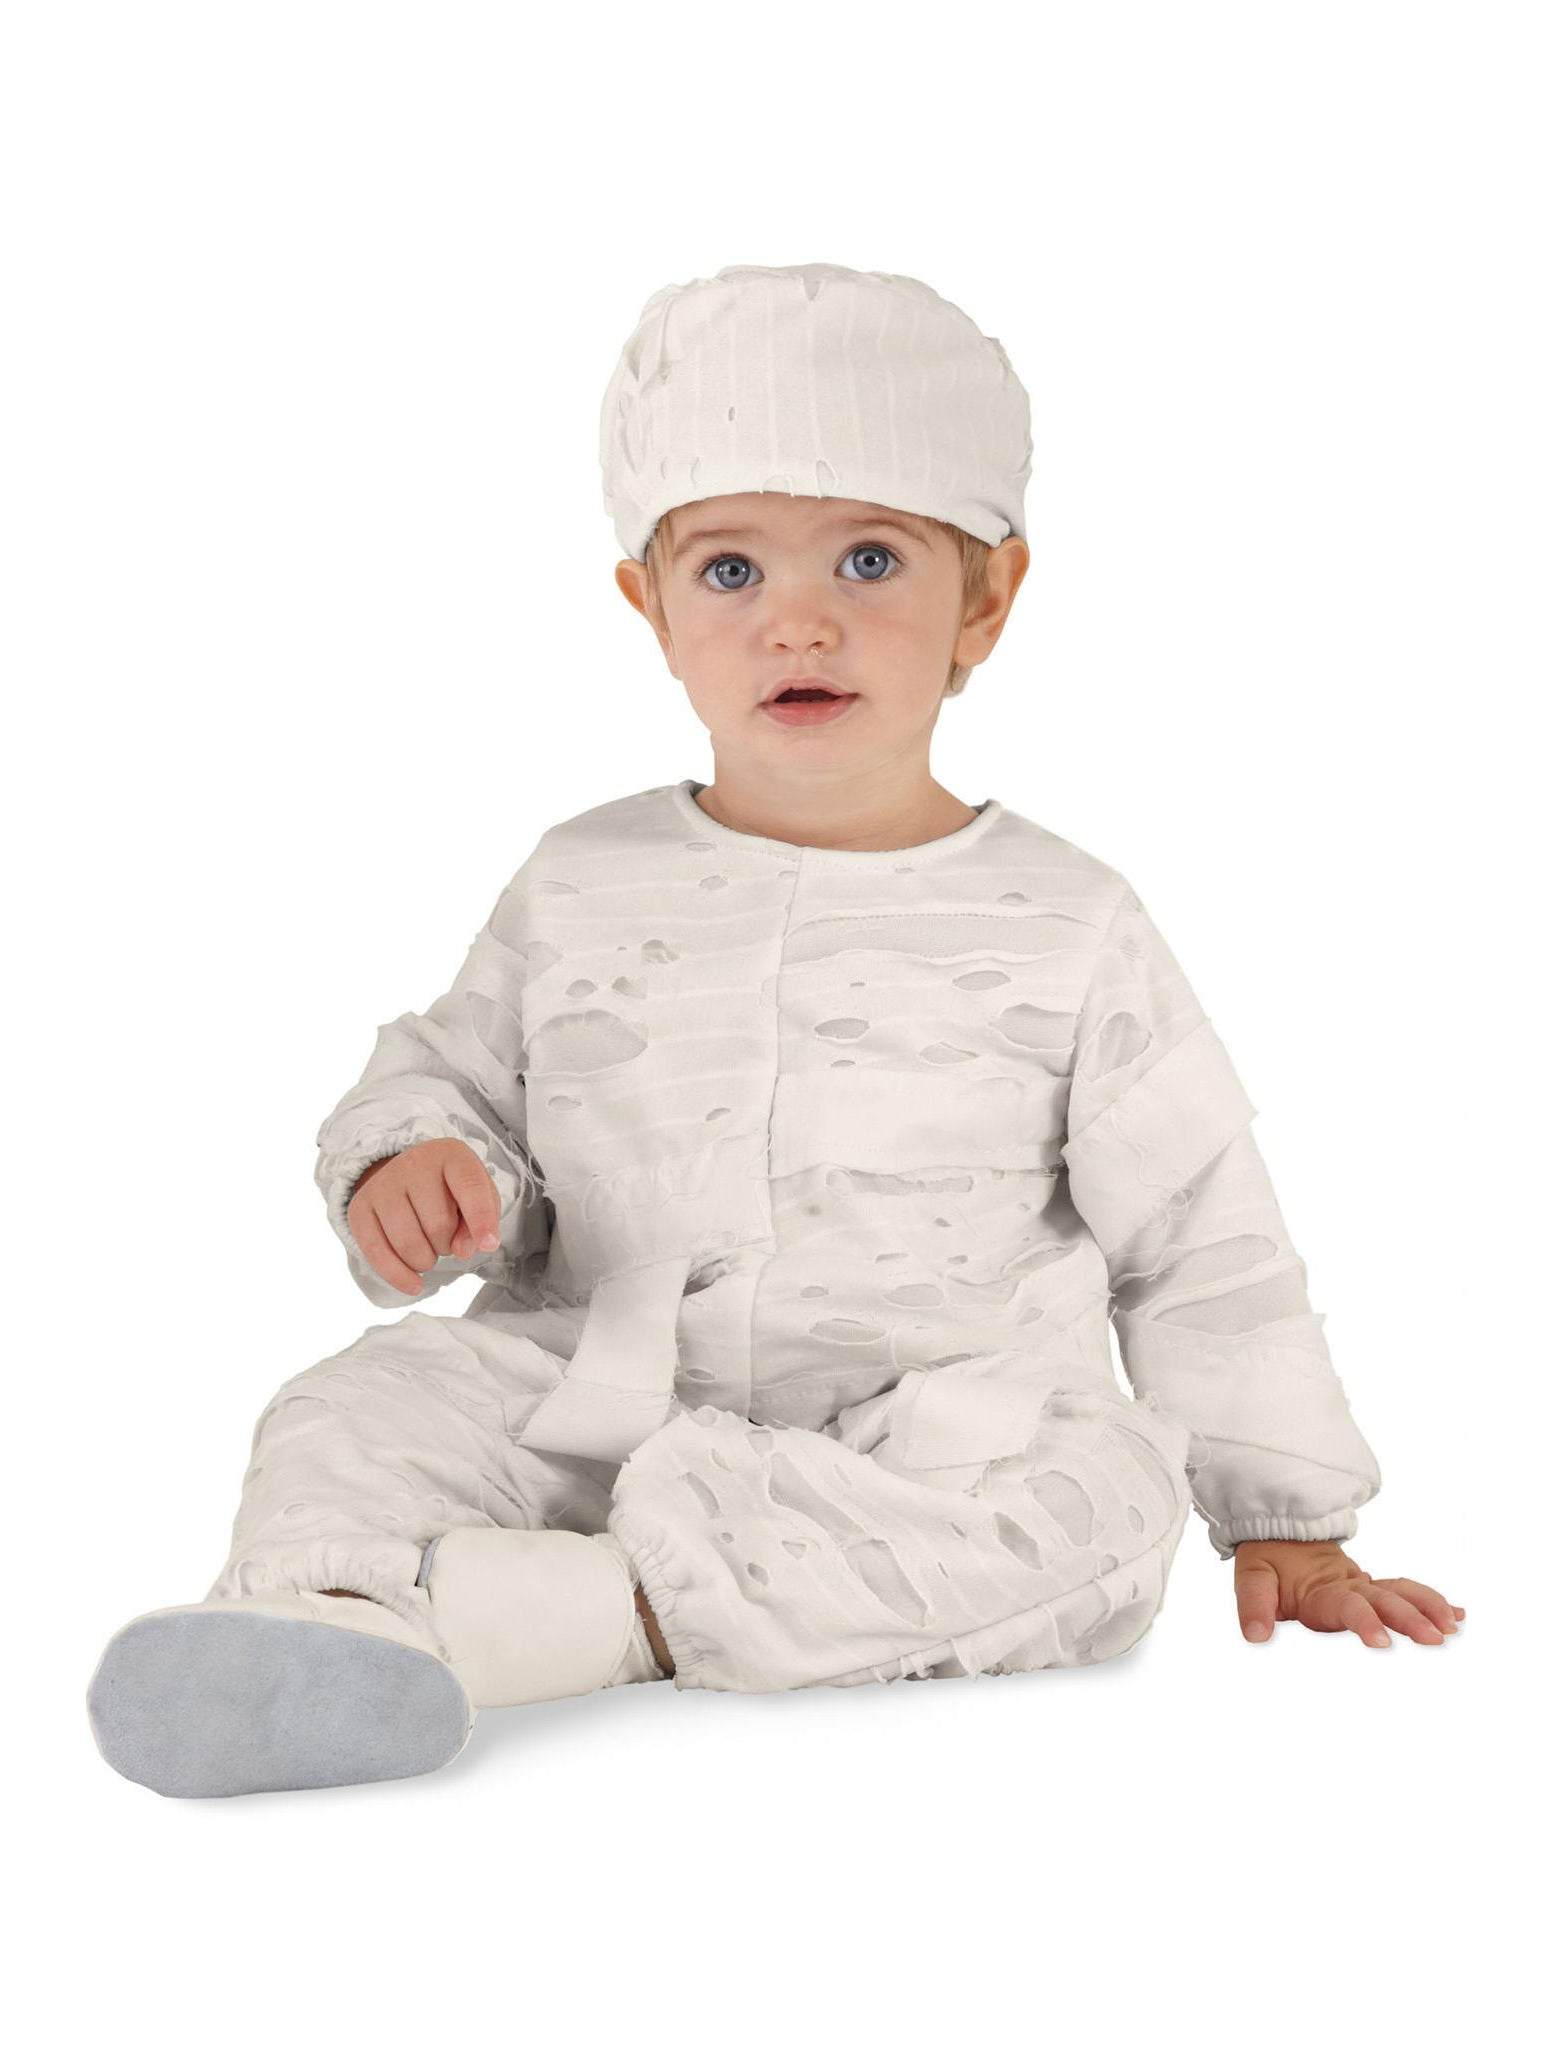 Little Mummy Costume For Baby Chasing Fireflies